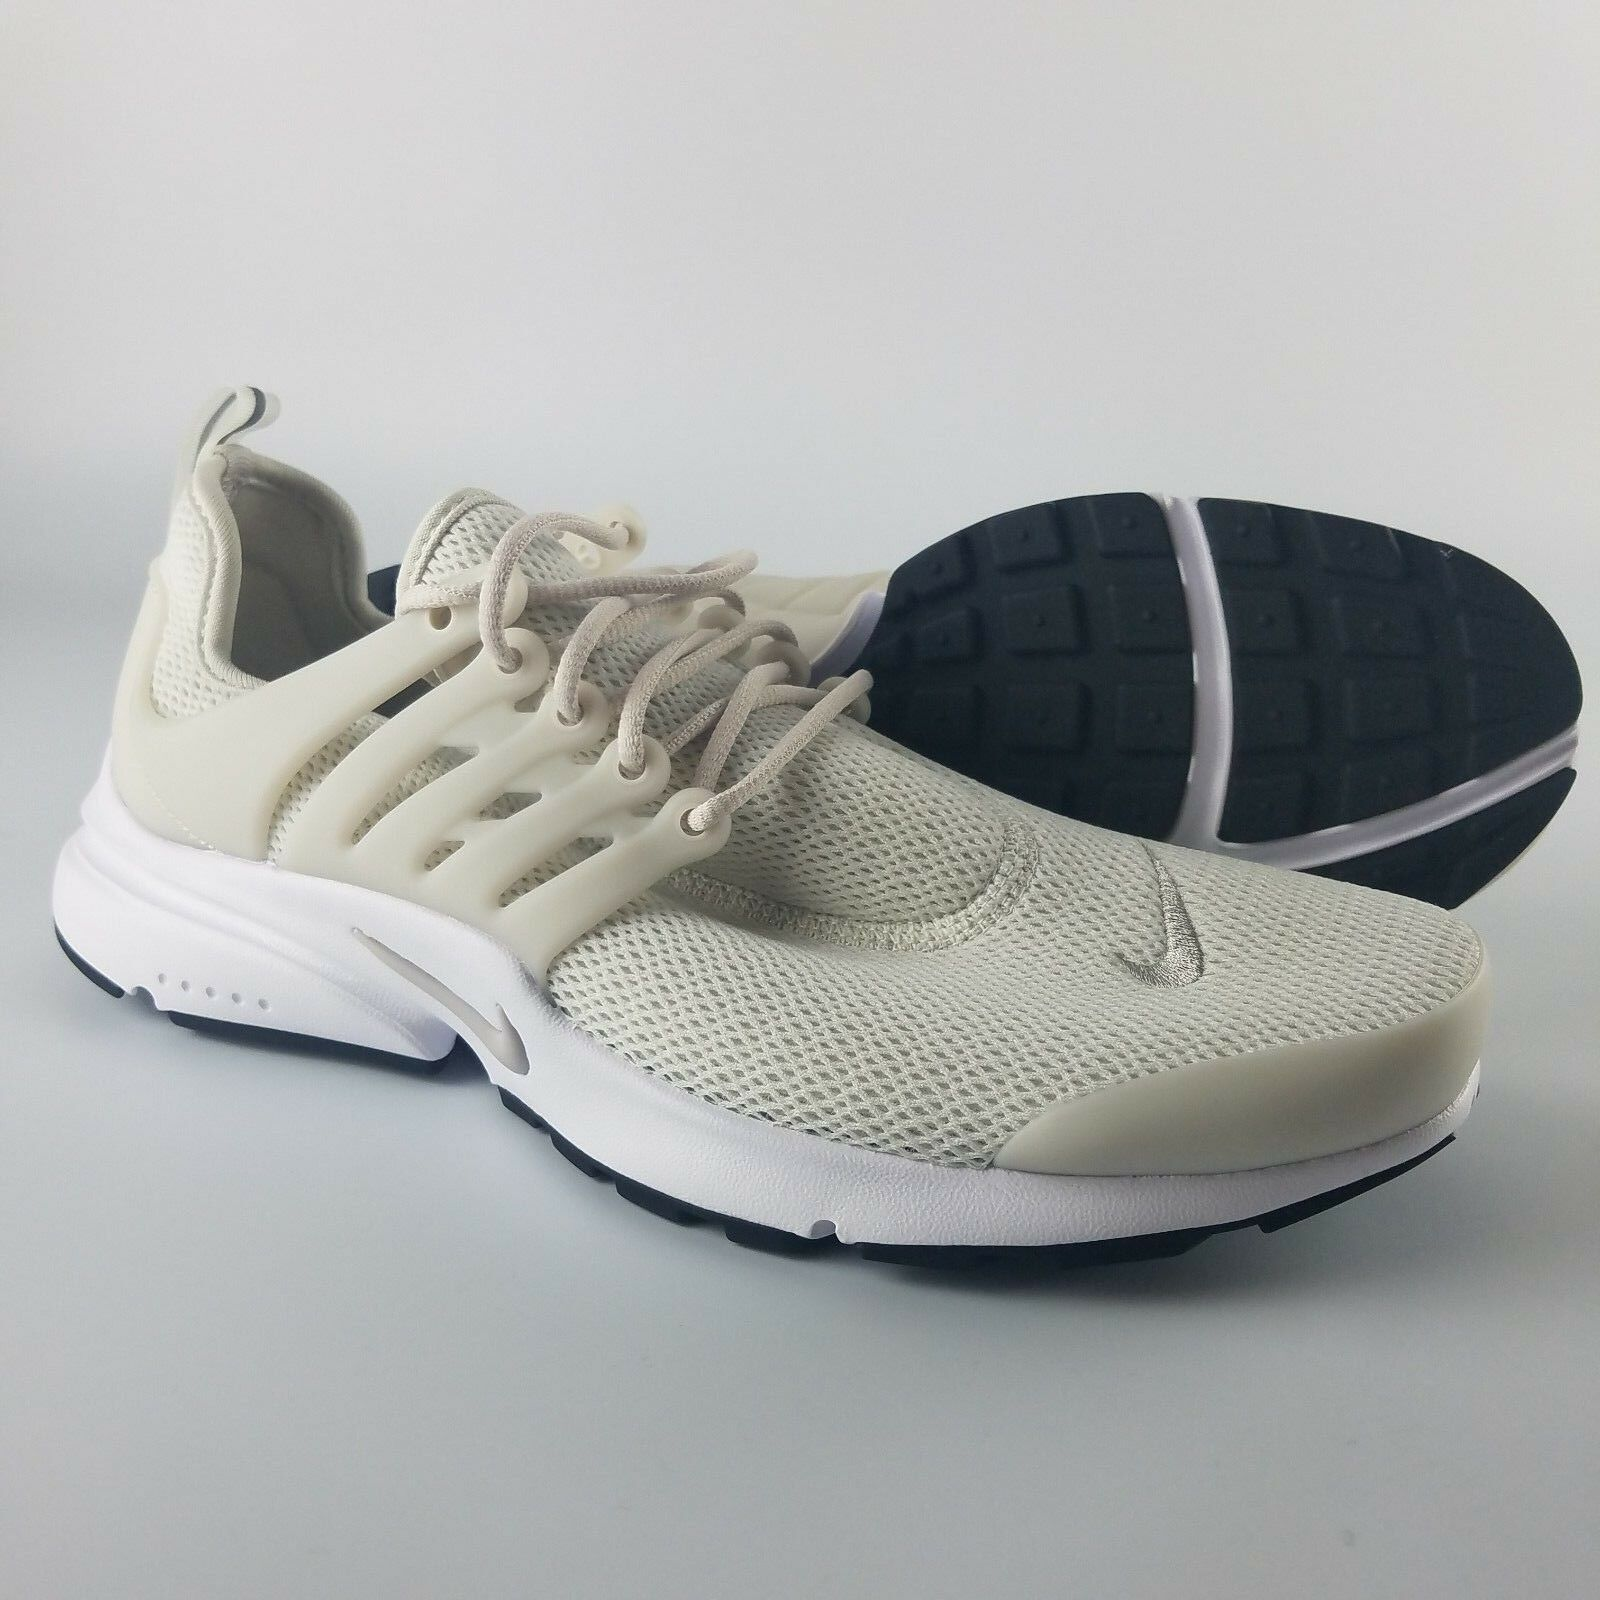 meet 2b5a3 8cba8 Nike Nike Nike Air Presto Running Shoes Women s Size 10 Light Bone Iron Ore  Black White 9e1fd2